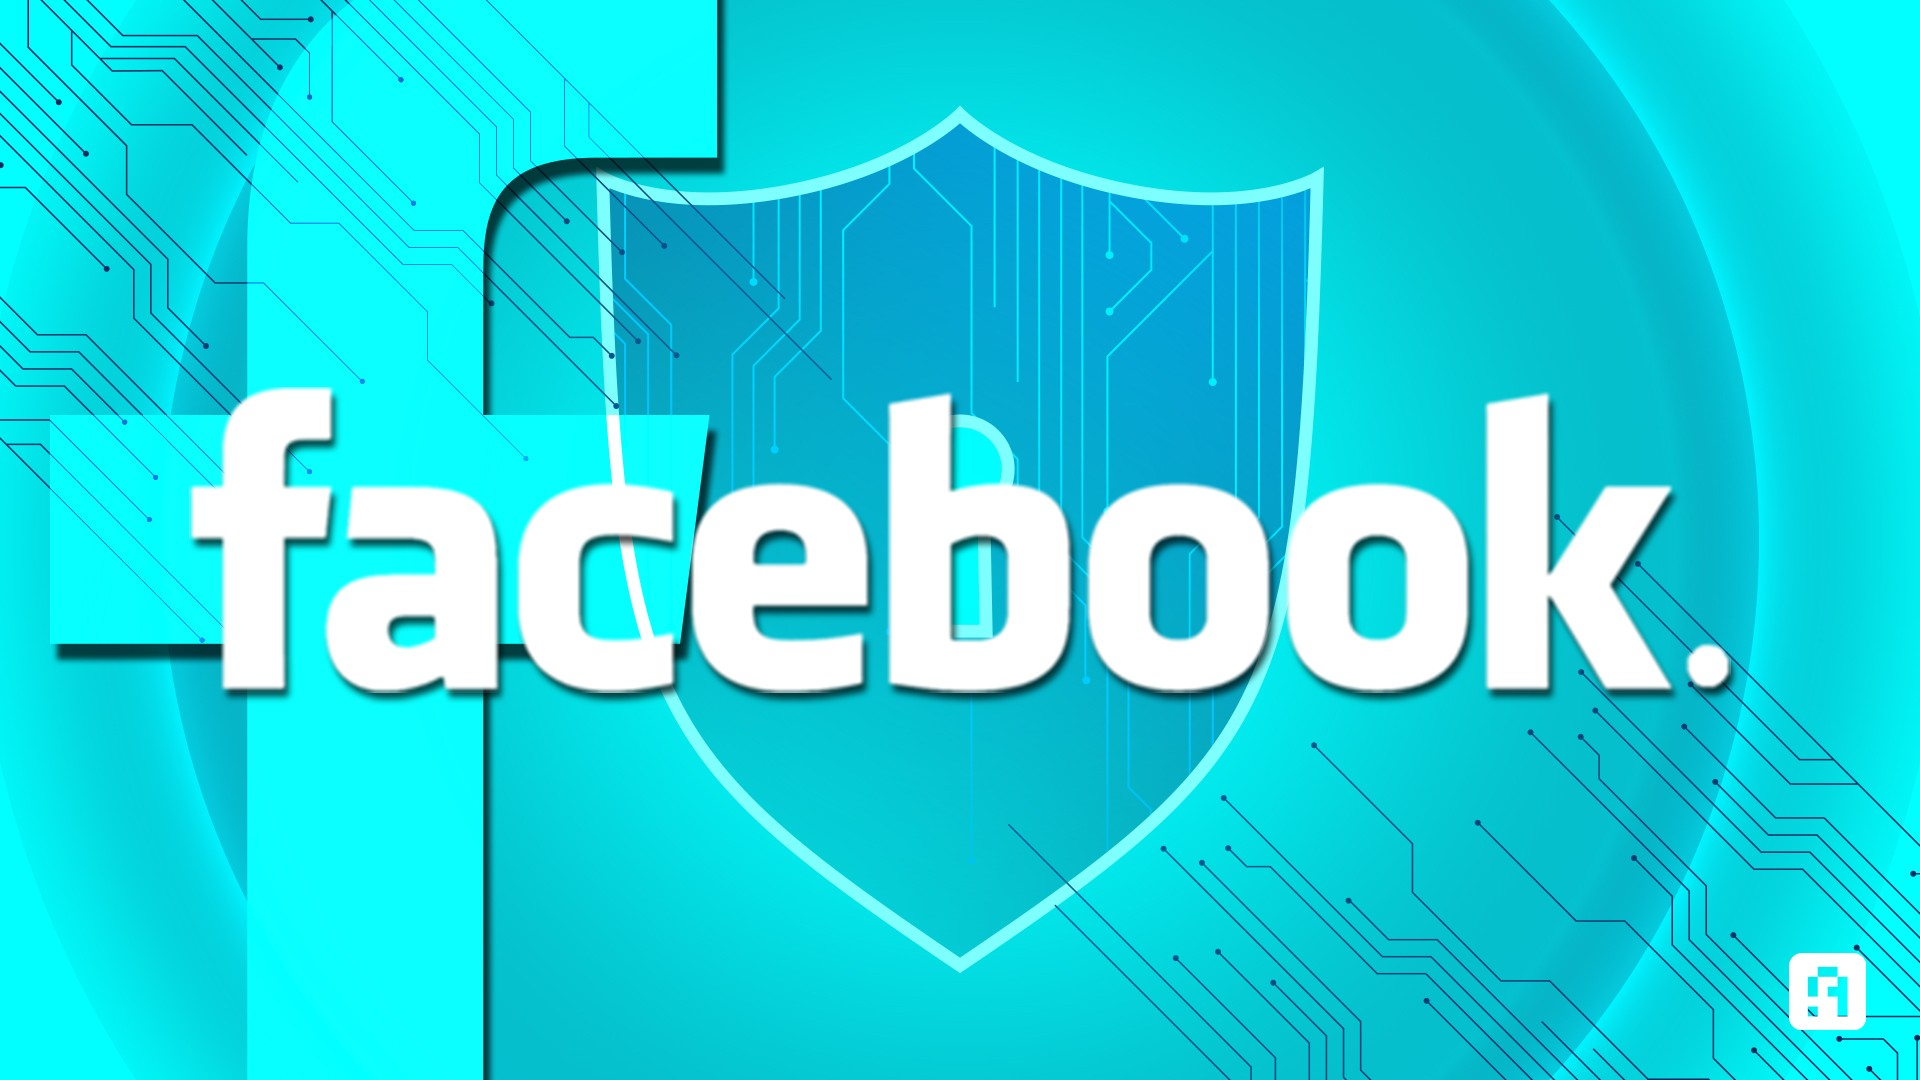 Facebook فيسبوك - Arabhardware Generic Photos